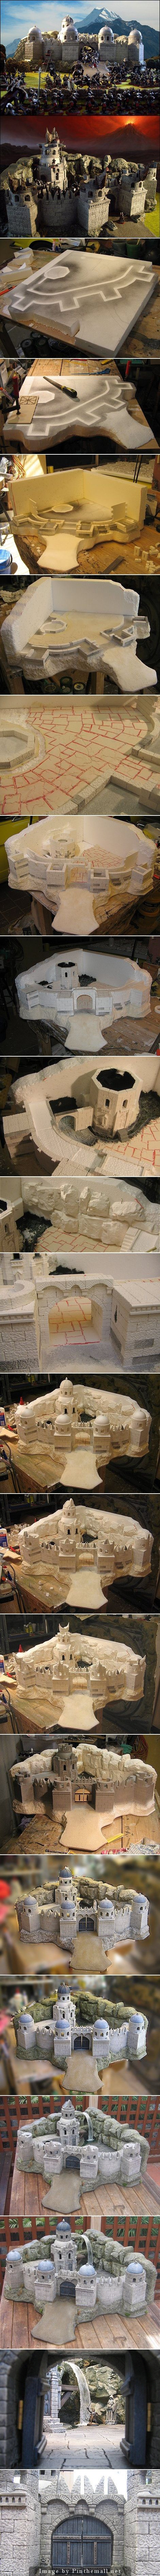 A Fortress of Gondor, Dol Amroth… & Mordor. | Onyx's Hobby Blog - created via http://pinthemall.net